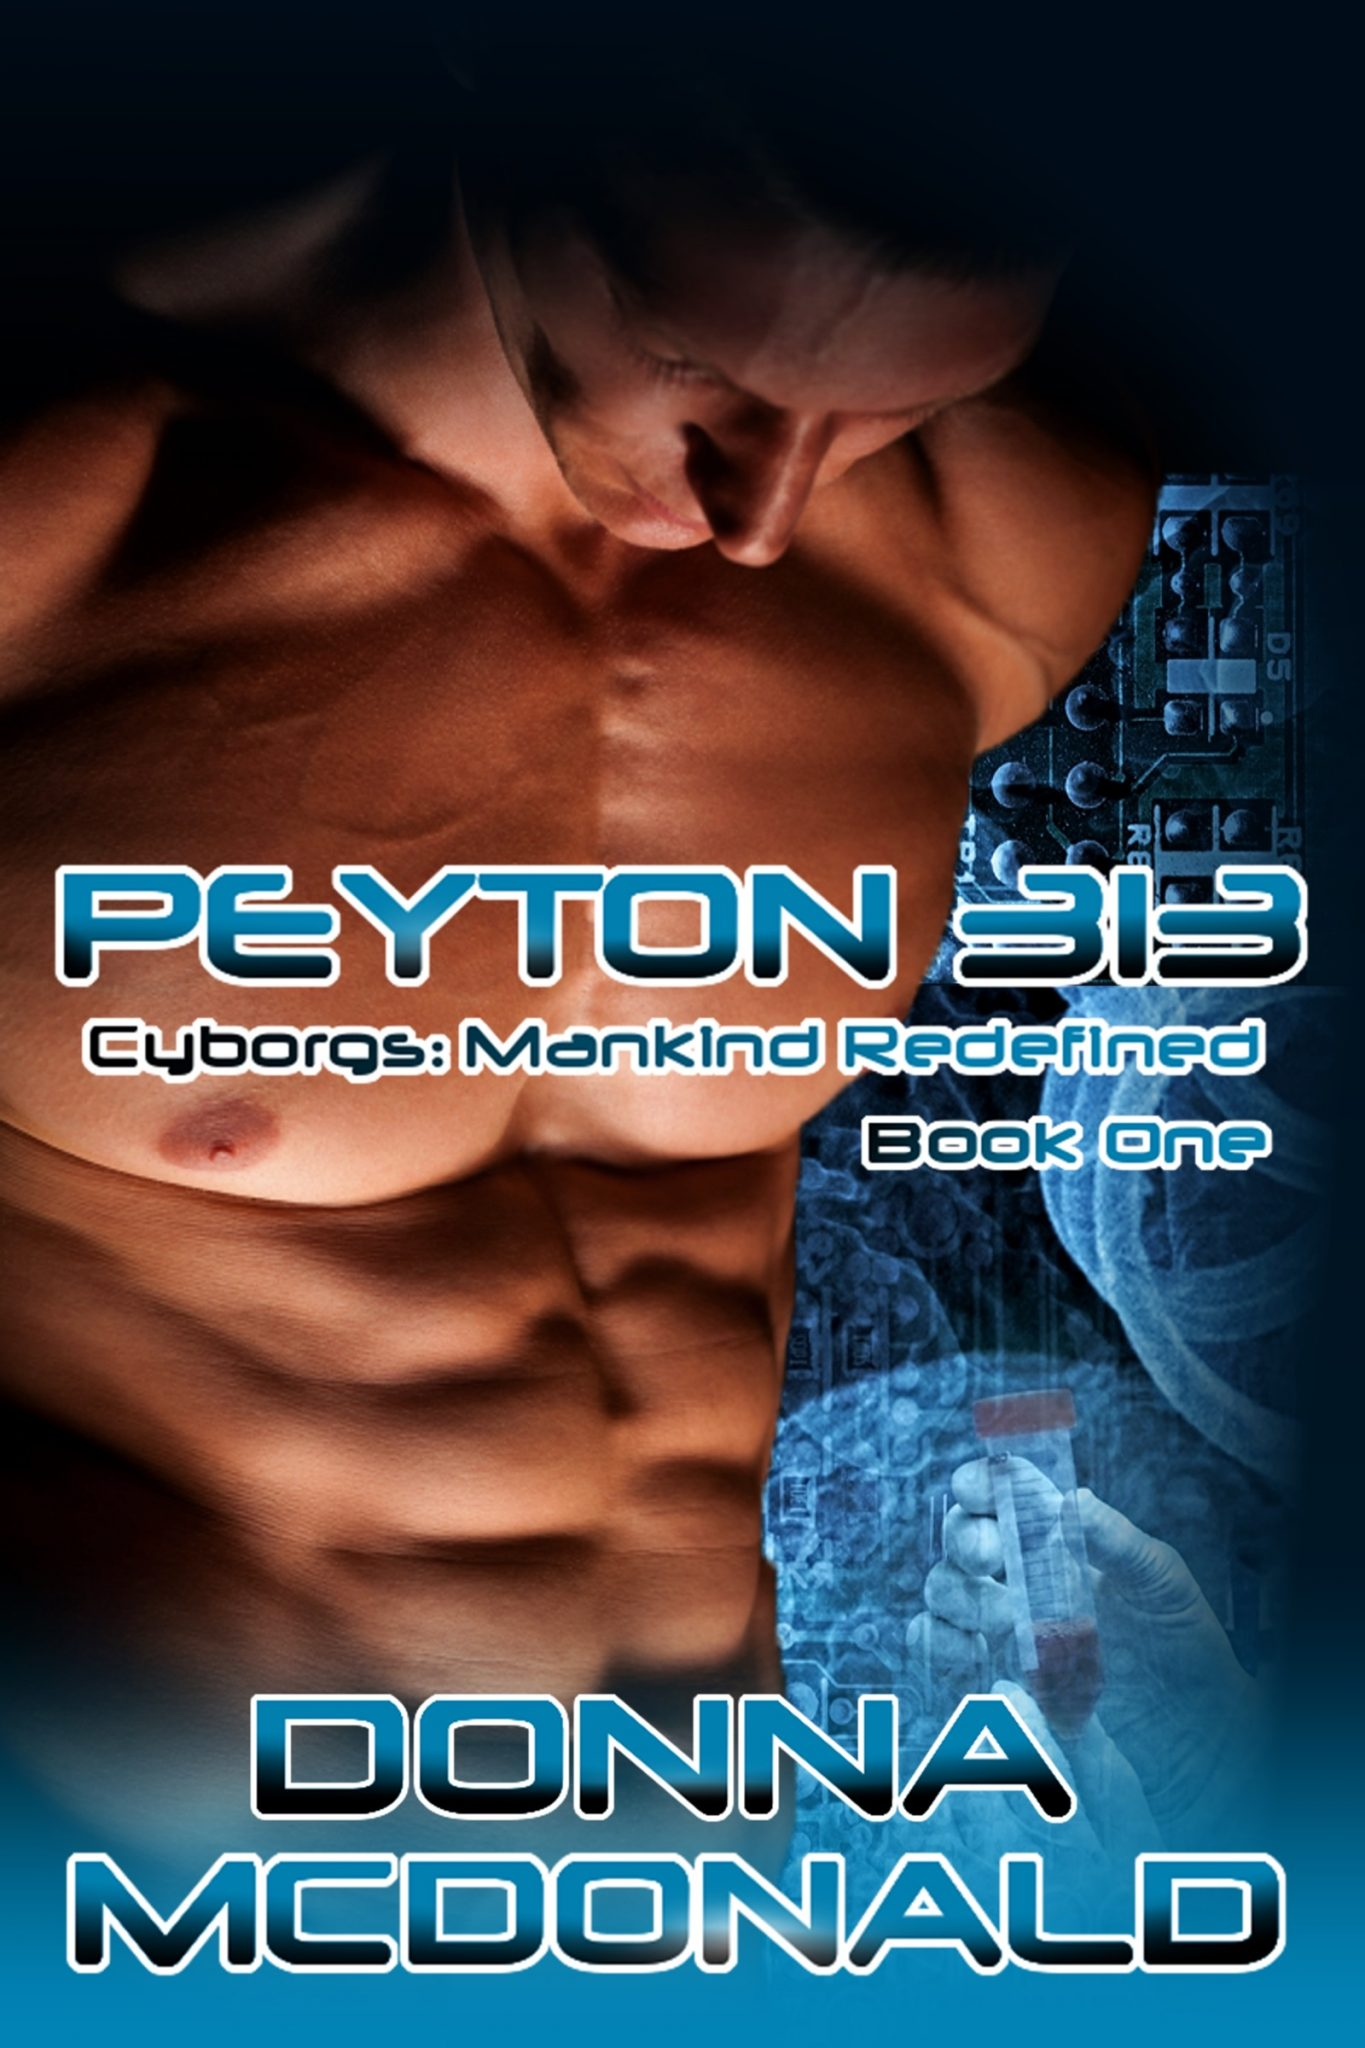 science fiction romance, cyborgs, genetic engineering, donna mcdonald